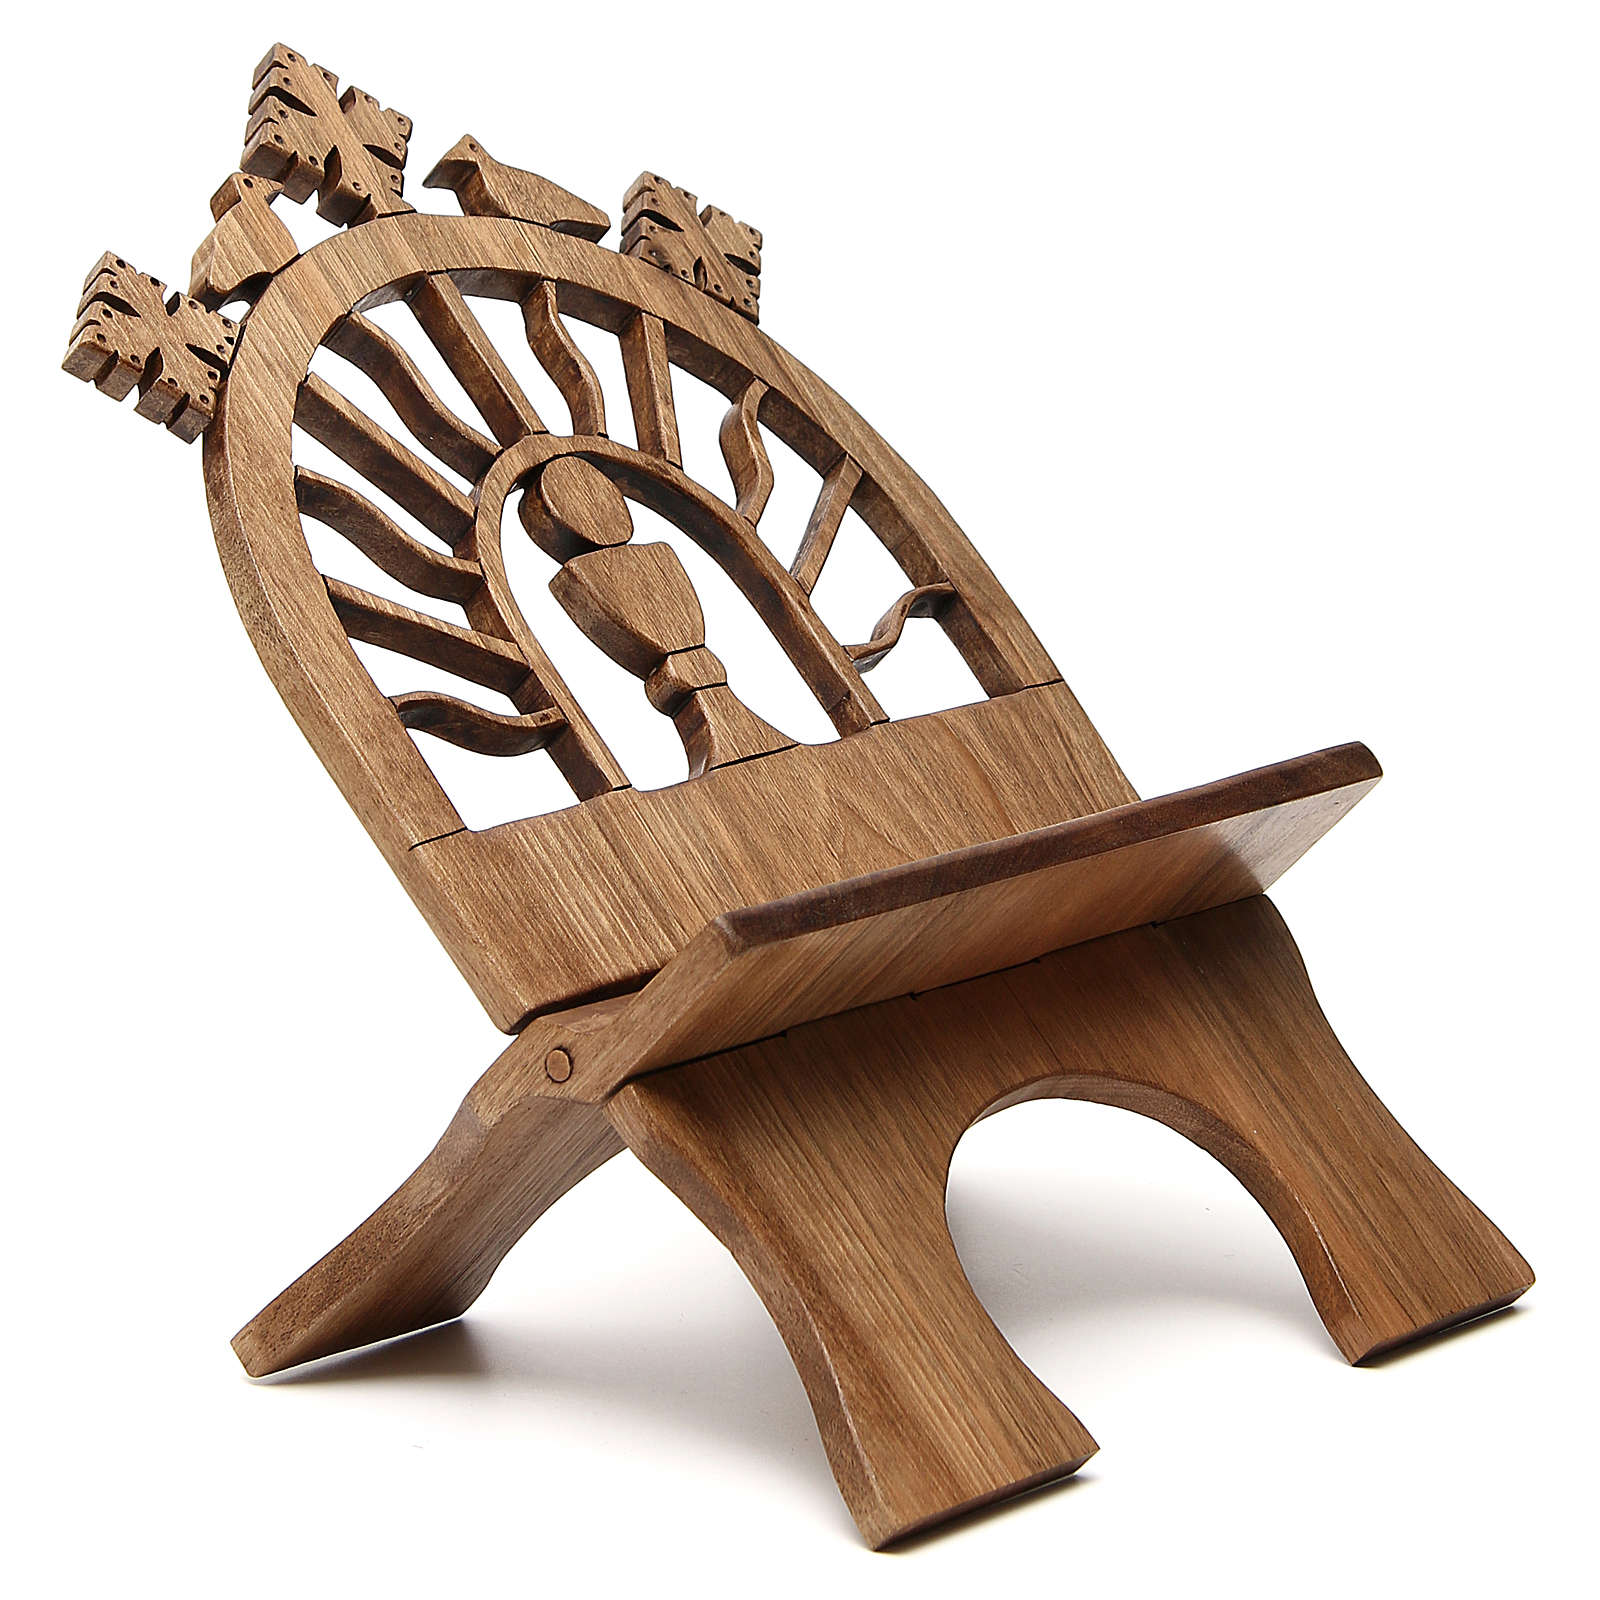 Book stand hand carved by the Bethlehem monks in Europena walnut wood 4